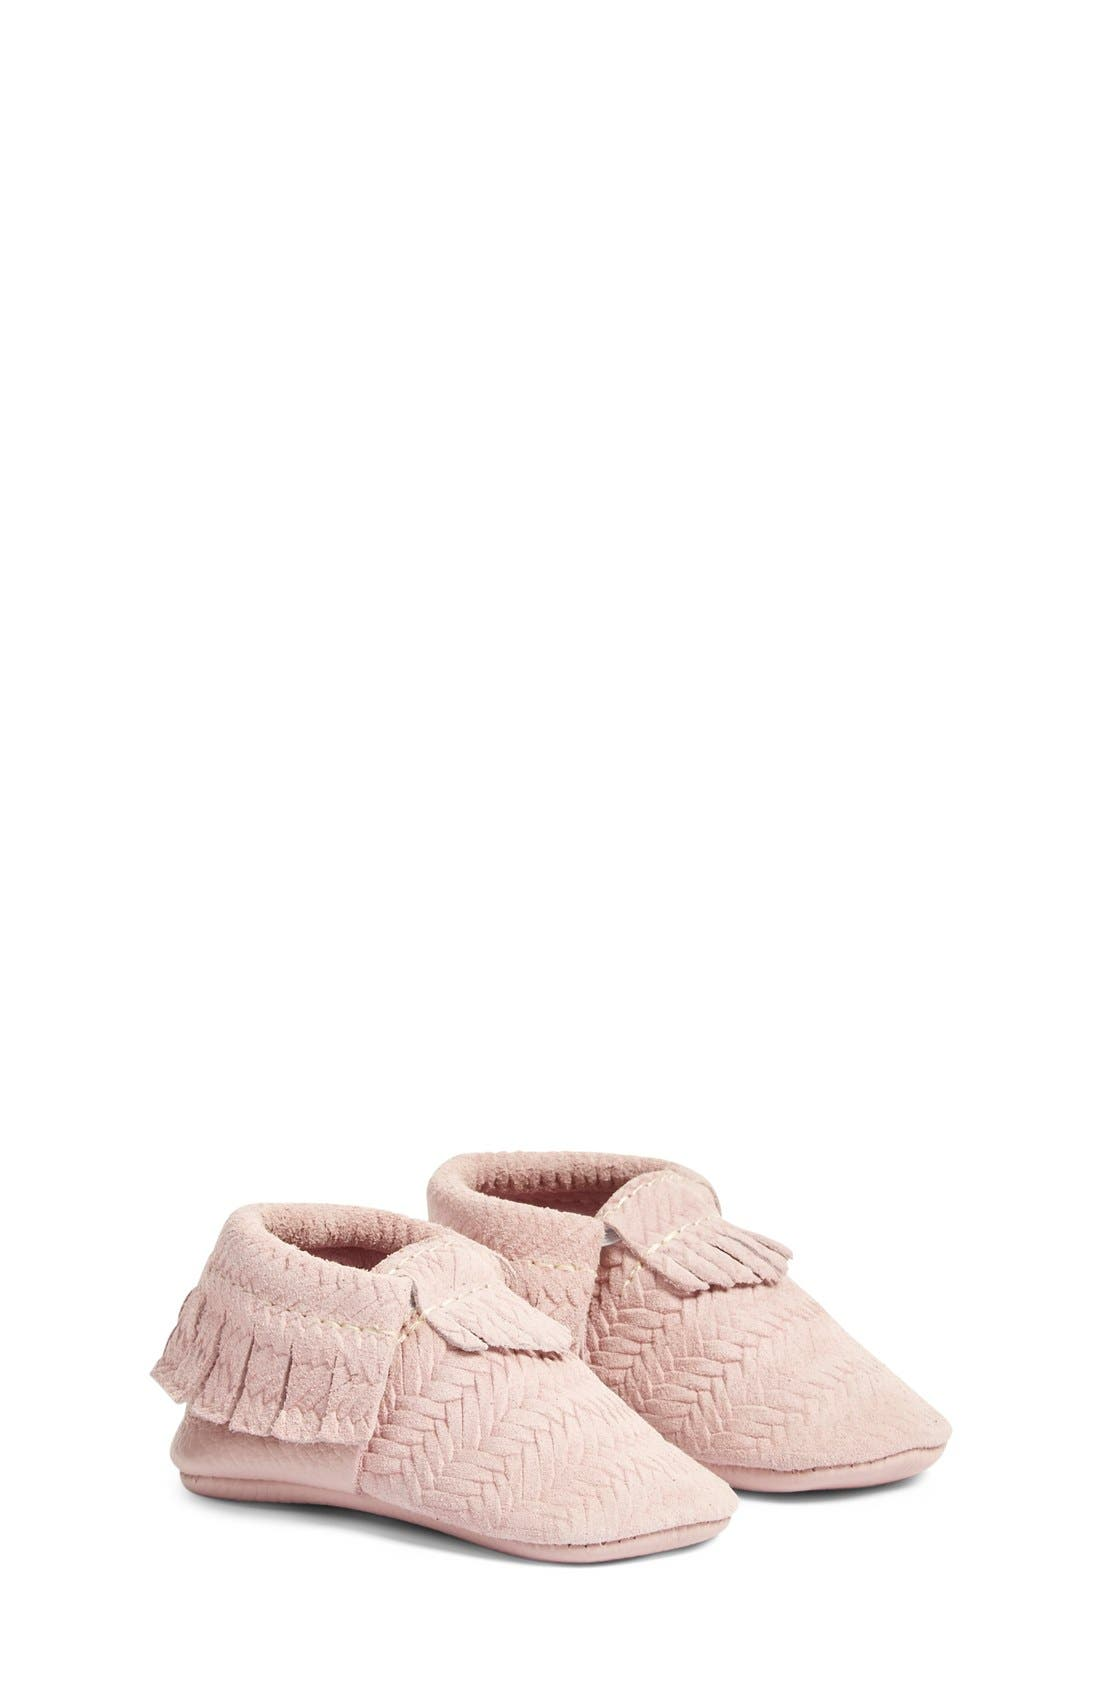 Freshly Picked 'Cardigan' Woven Leather Moccasin (Baby)